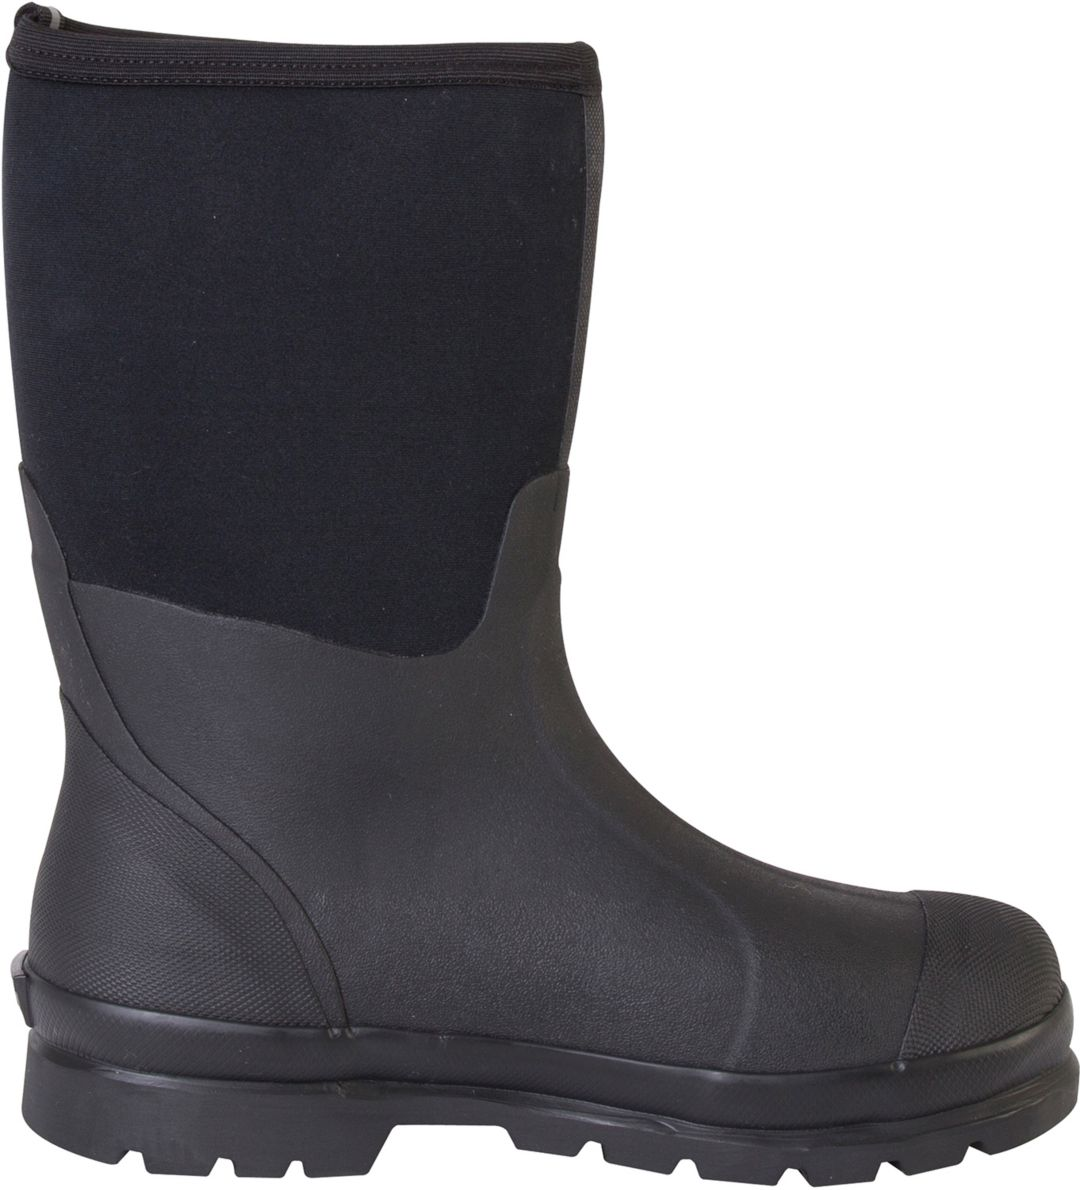 db76a8a805d Muck Boots Men's Chore Mid Waterproof Work Boots